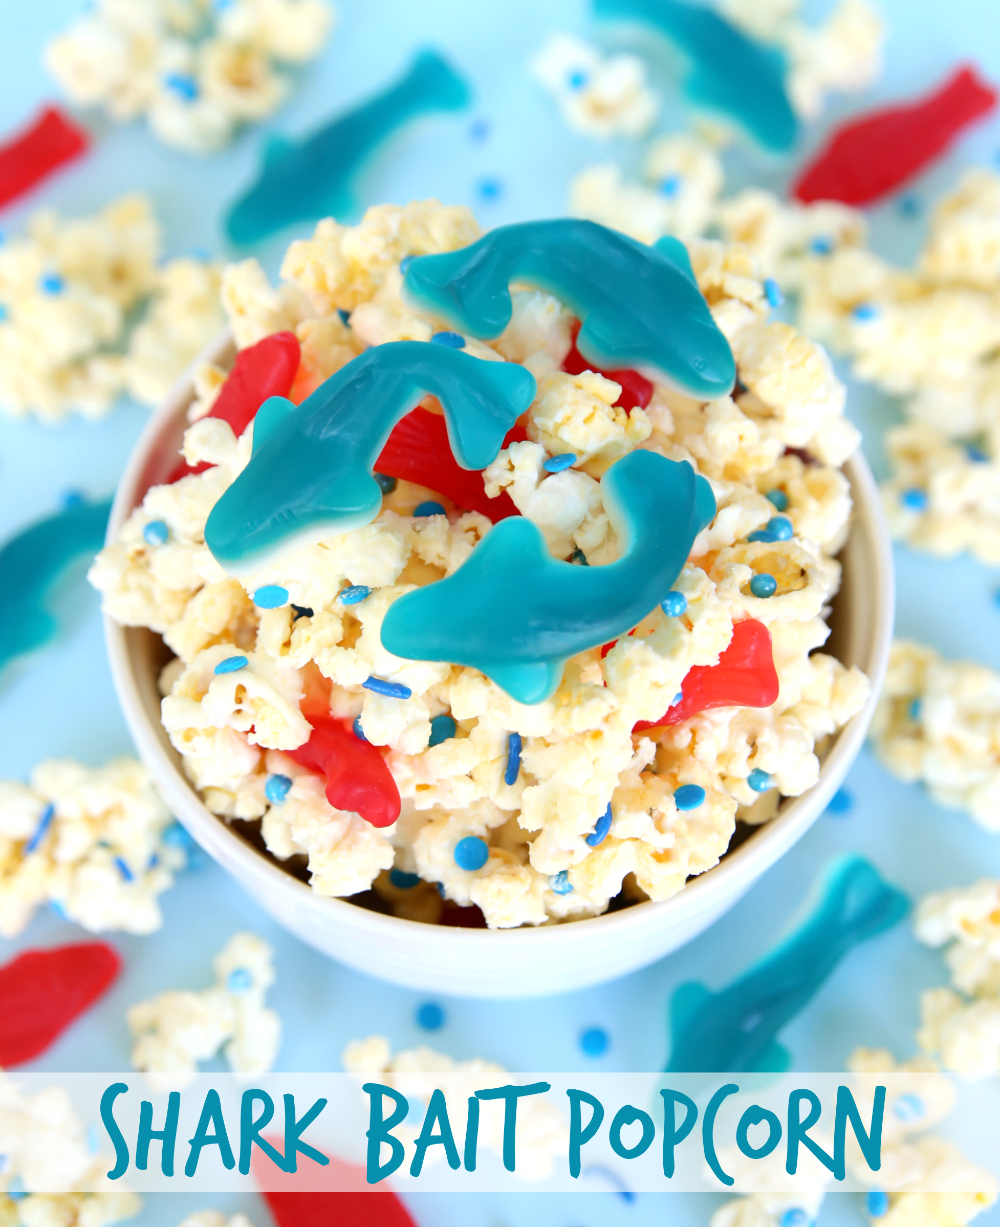 Celebrate Shark Week with Shark Bait Popcorn! Plus, what's not to love about popcorn coated with white chocolate and mixed with candy?